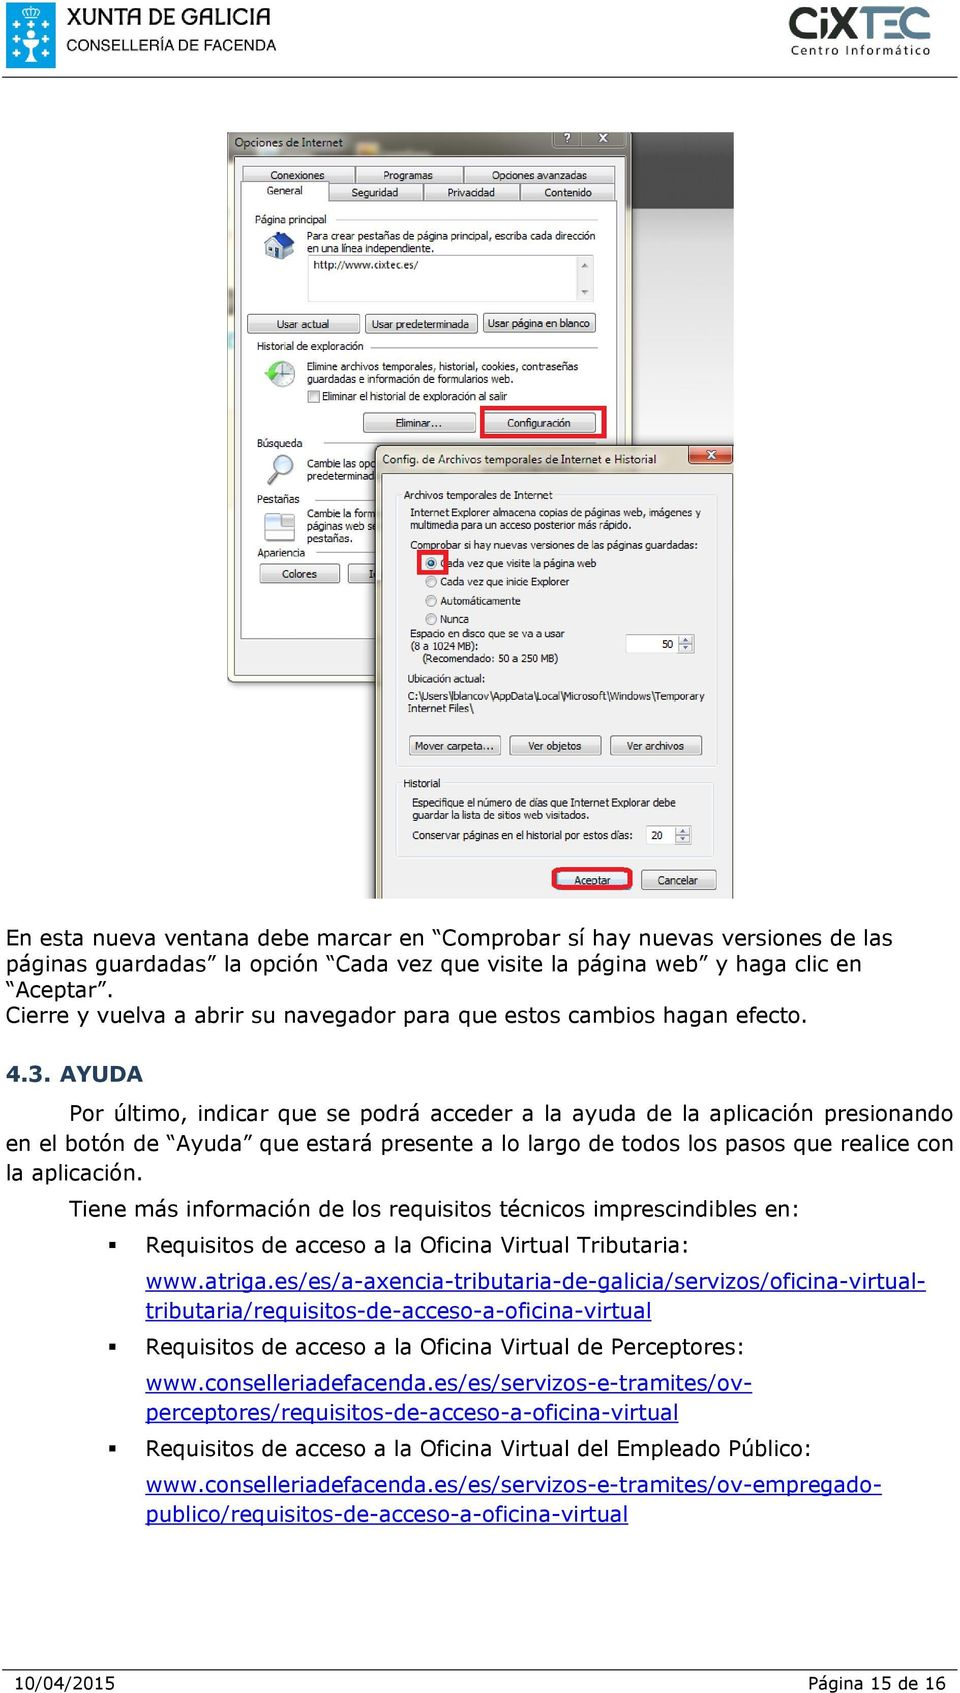 Gu a de comprobaci n de requisitos y soluci n a problemas for Oficina virtual tributaria